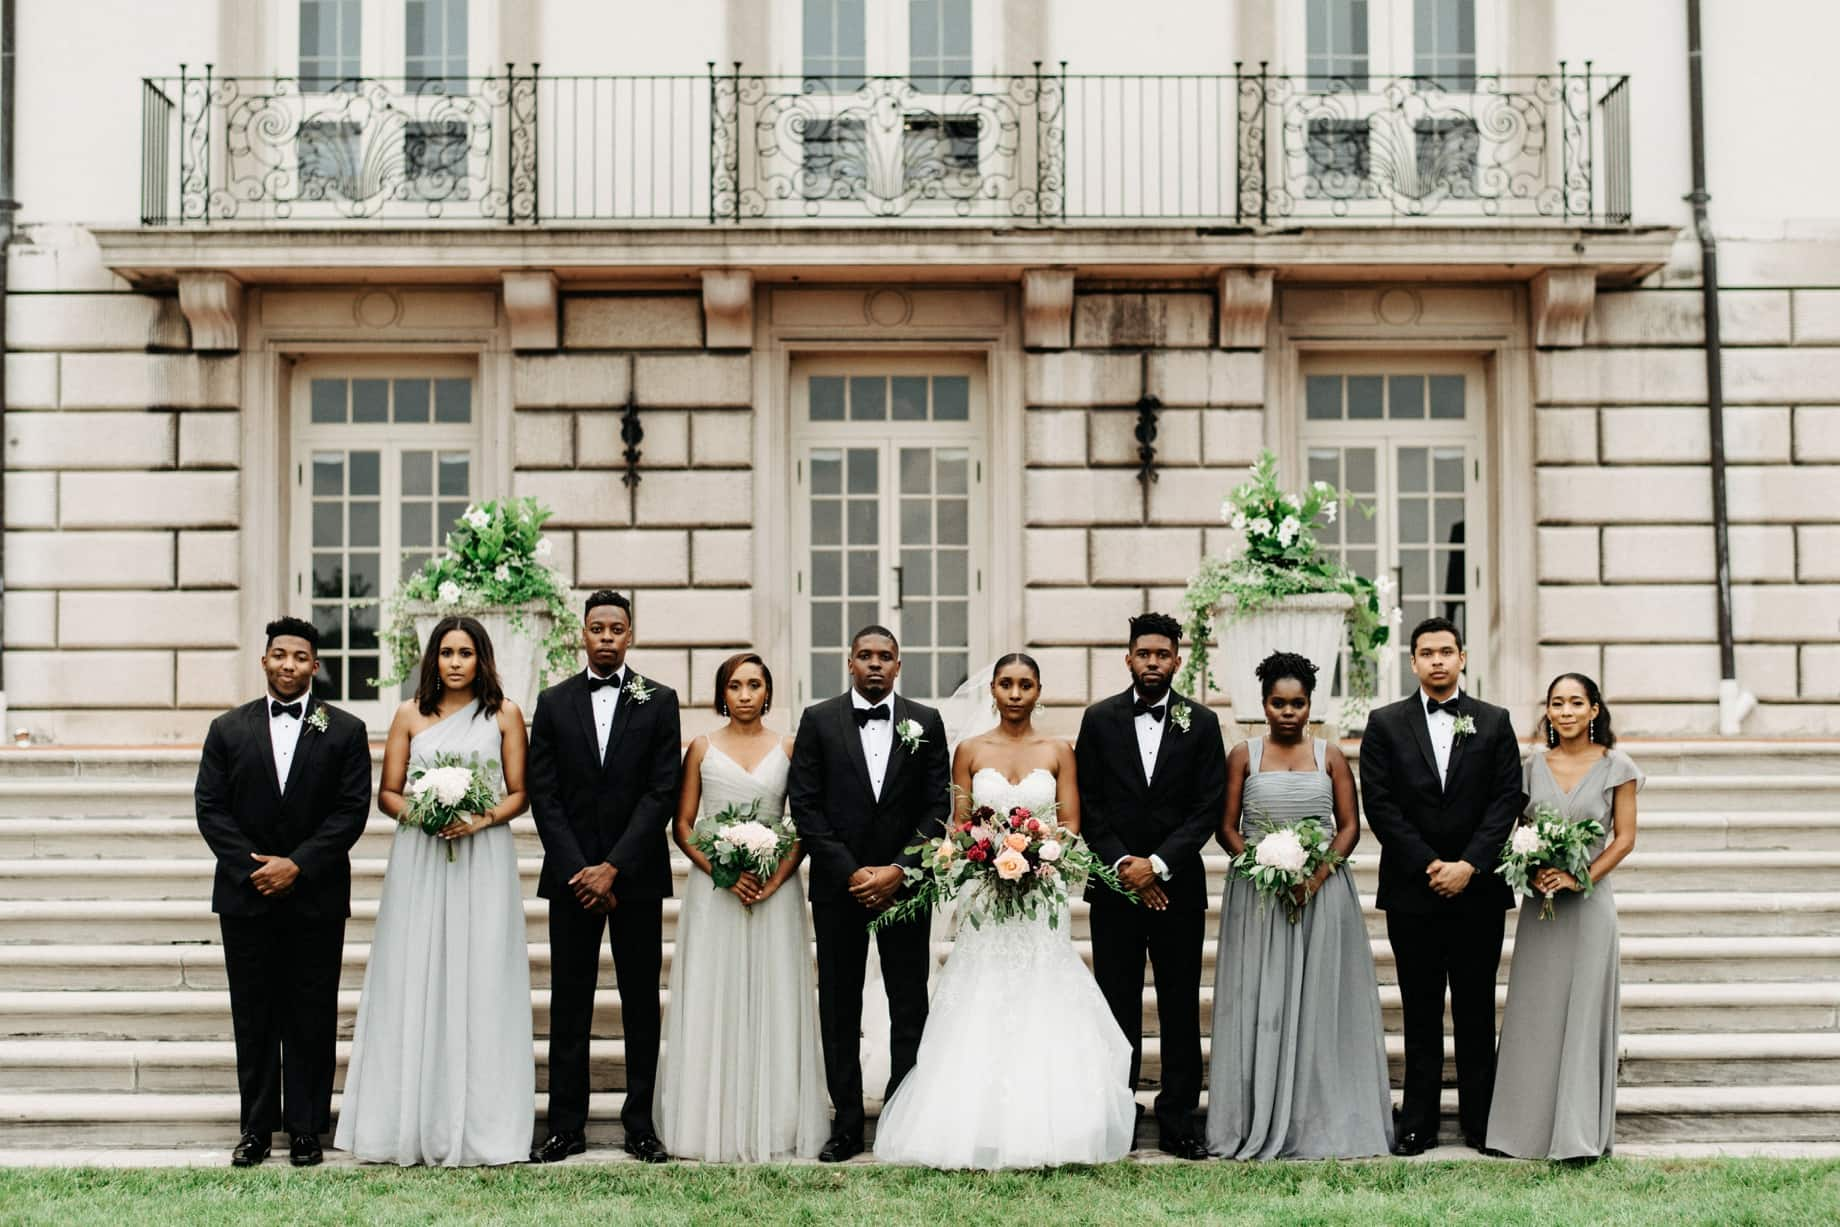 bride and groom pose with their wedding party in tuxedos and pale blue grey